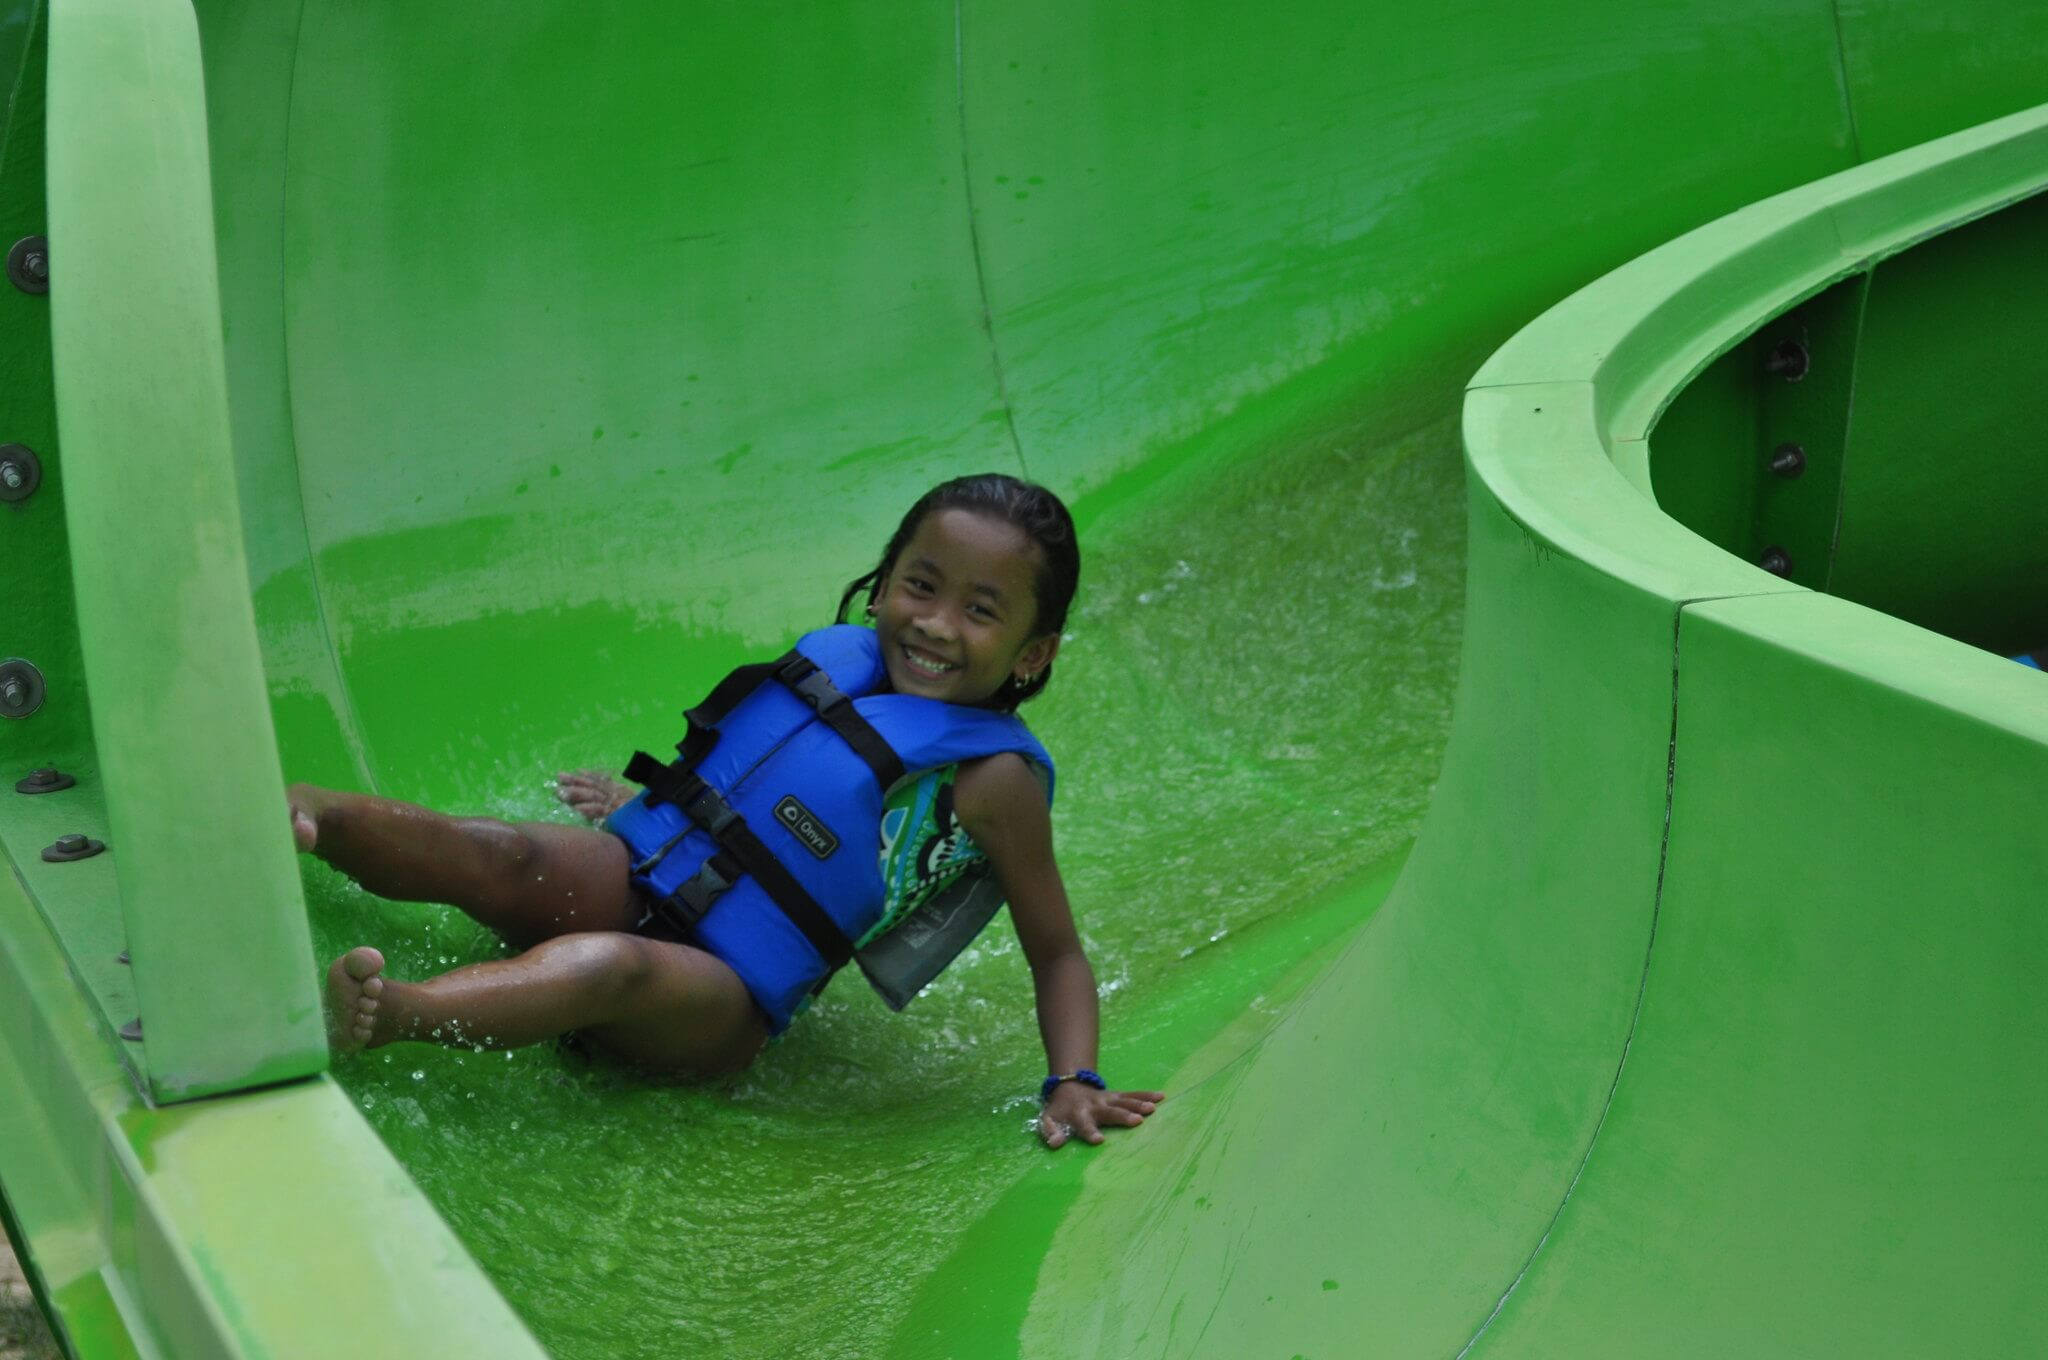 a young black boy sliding down a green slide in a life jacket